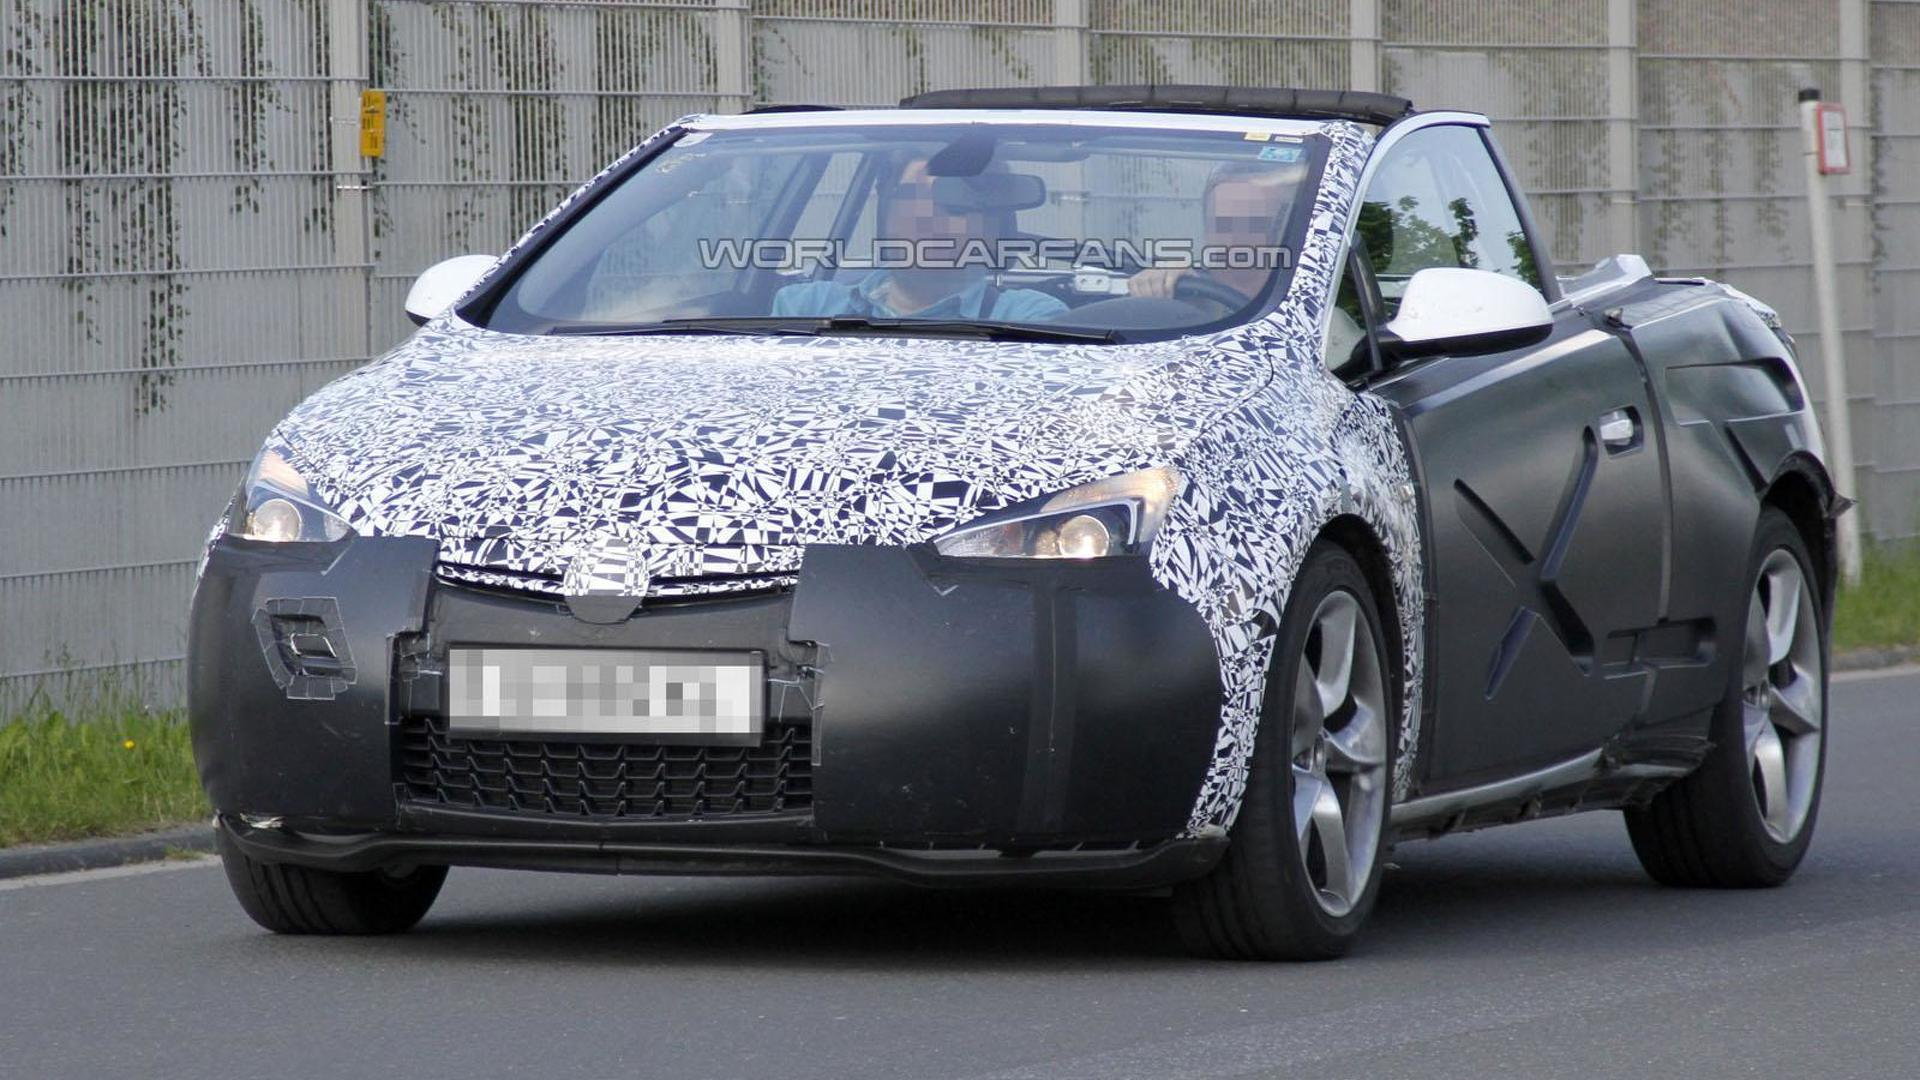 2013 Opel / Vauxhall Astra Cabrio caught topless